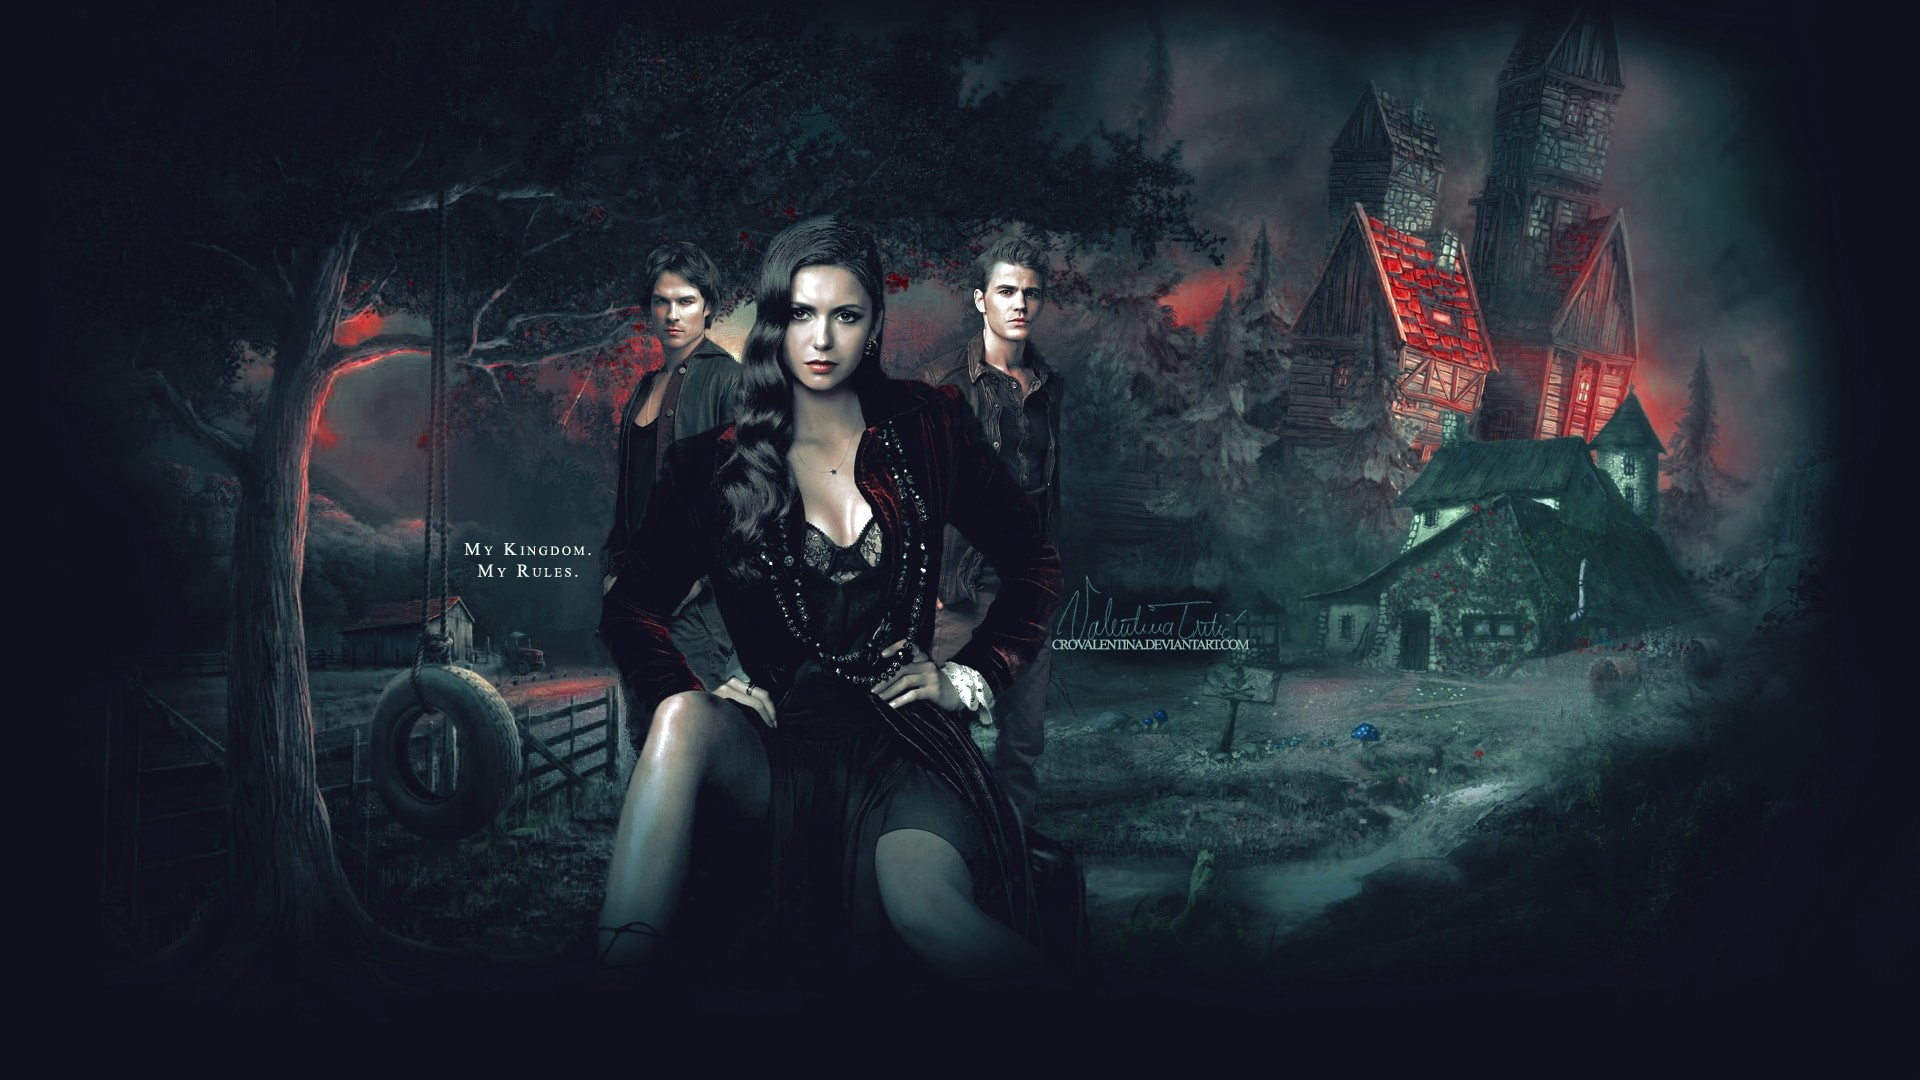 Res: 1920x1080, The Vampire Diaries desktop wallpaper